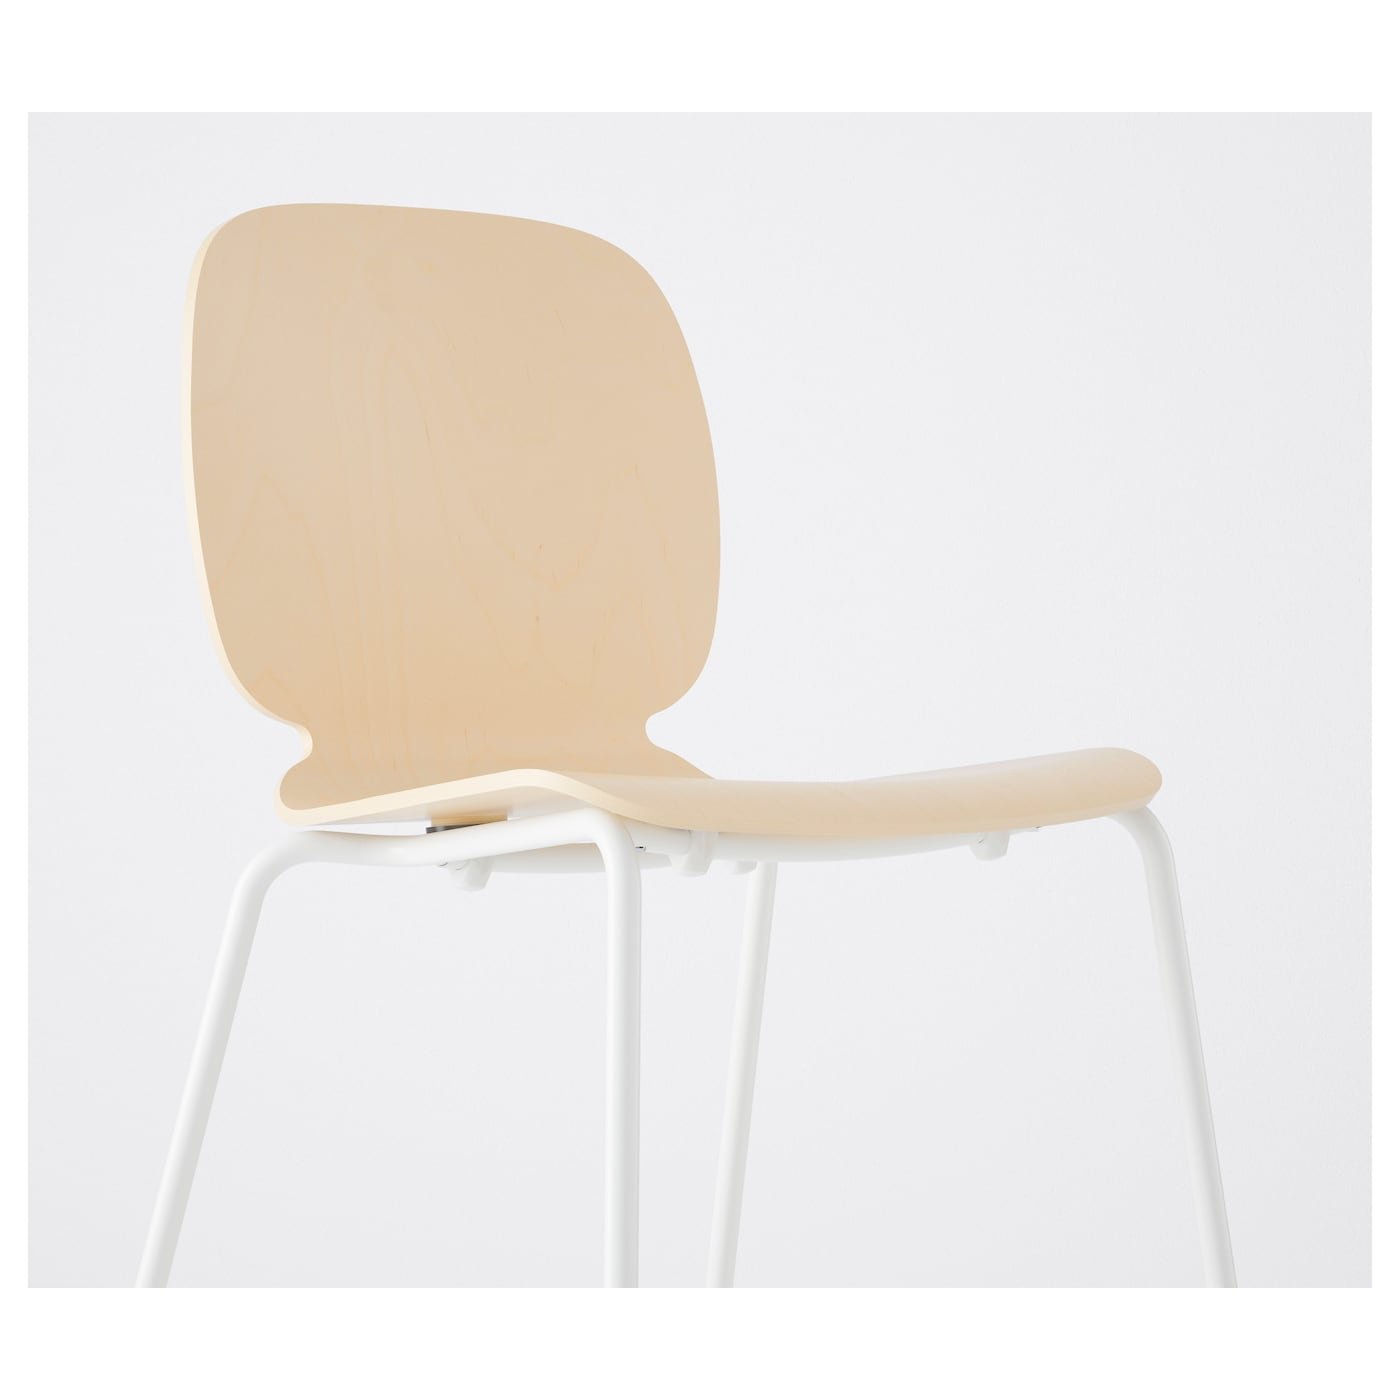 Svenbertil chaise bouleau broringe blanc ikea for Chaise assis genoux ikea